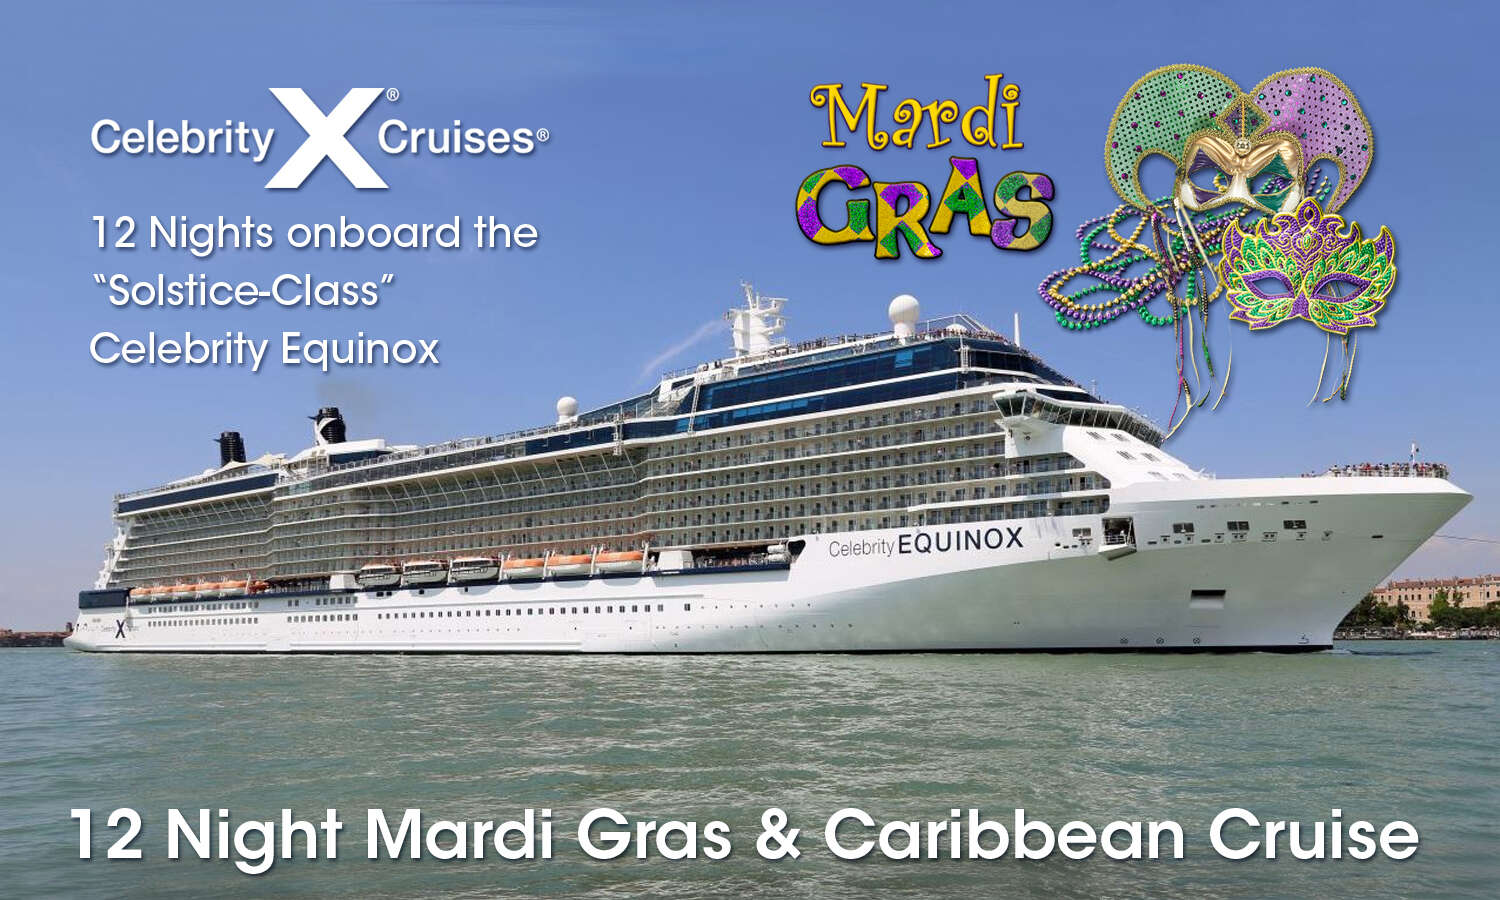 Mardi Gras Celebrity Cruise 2021